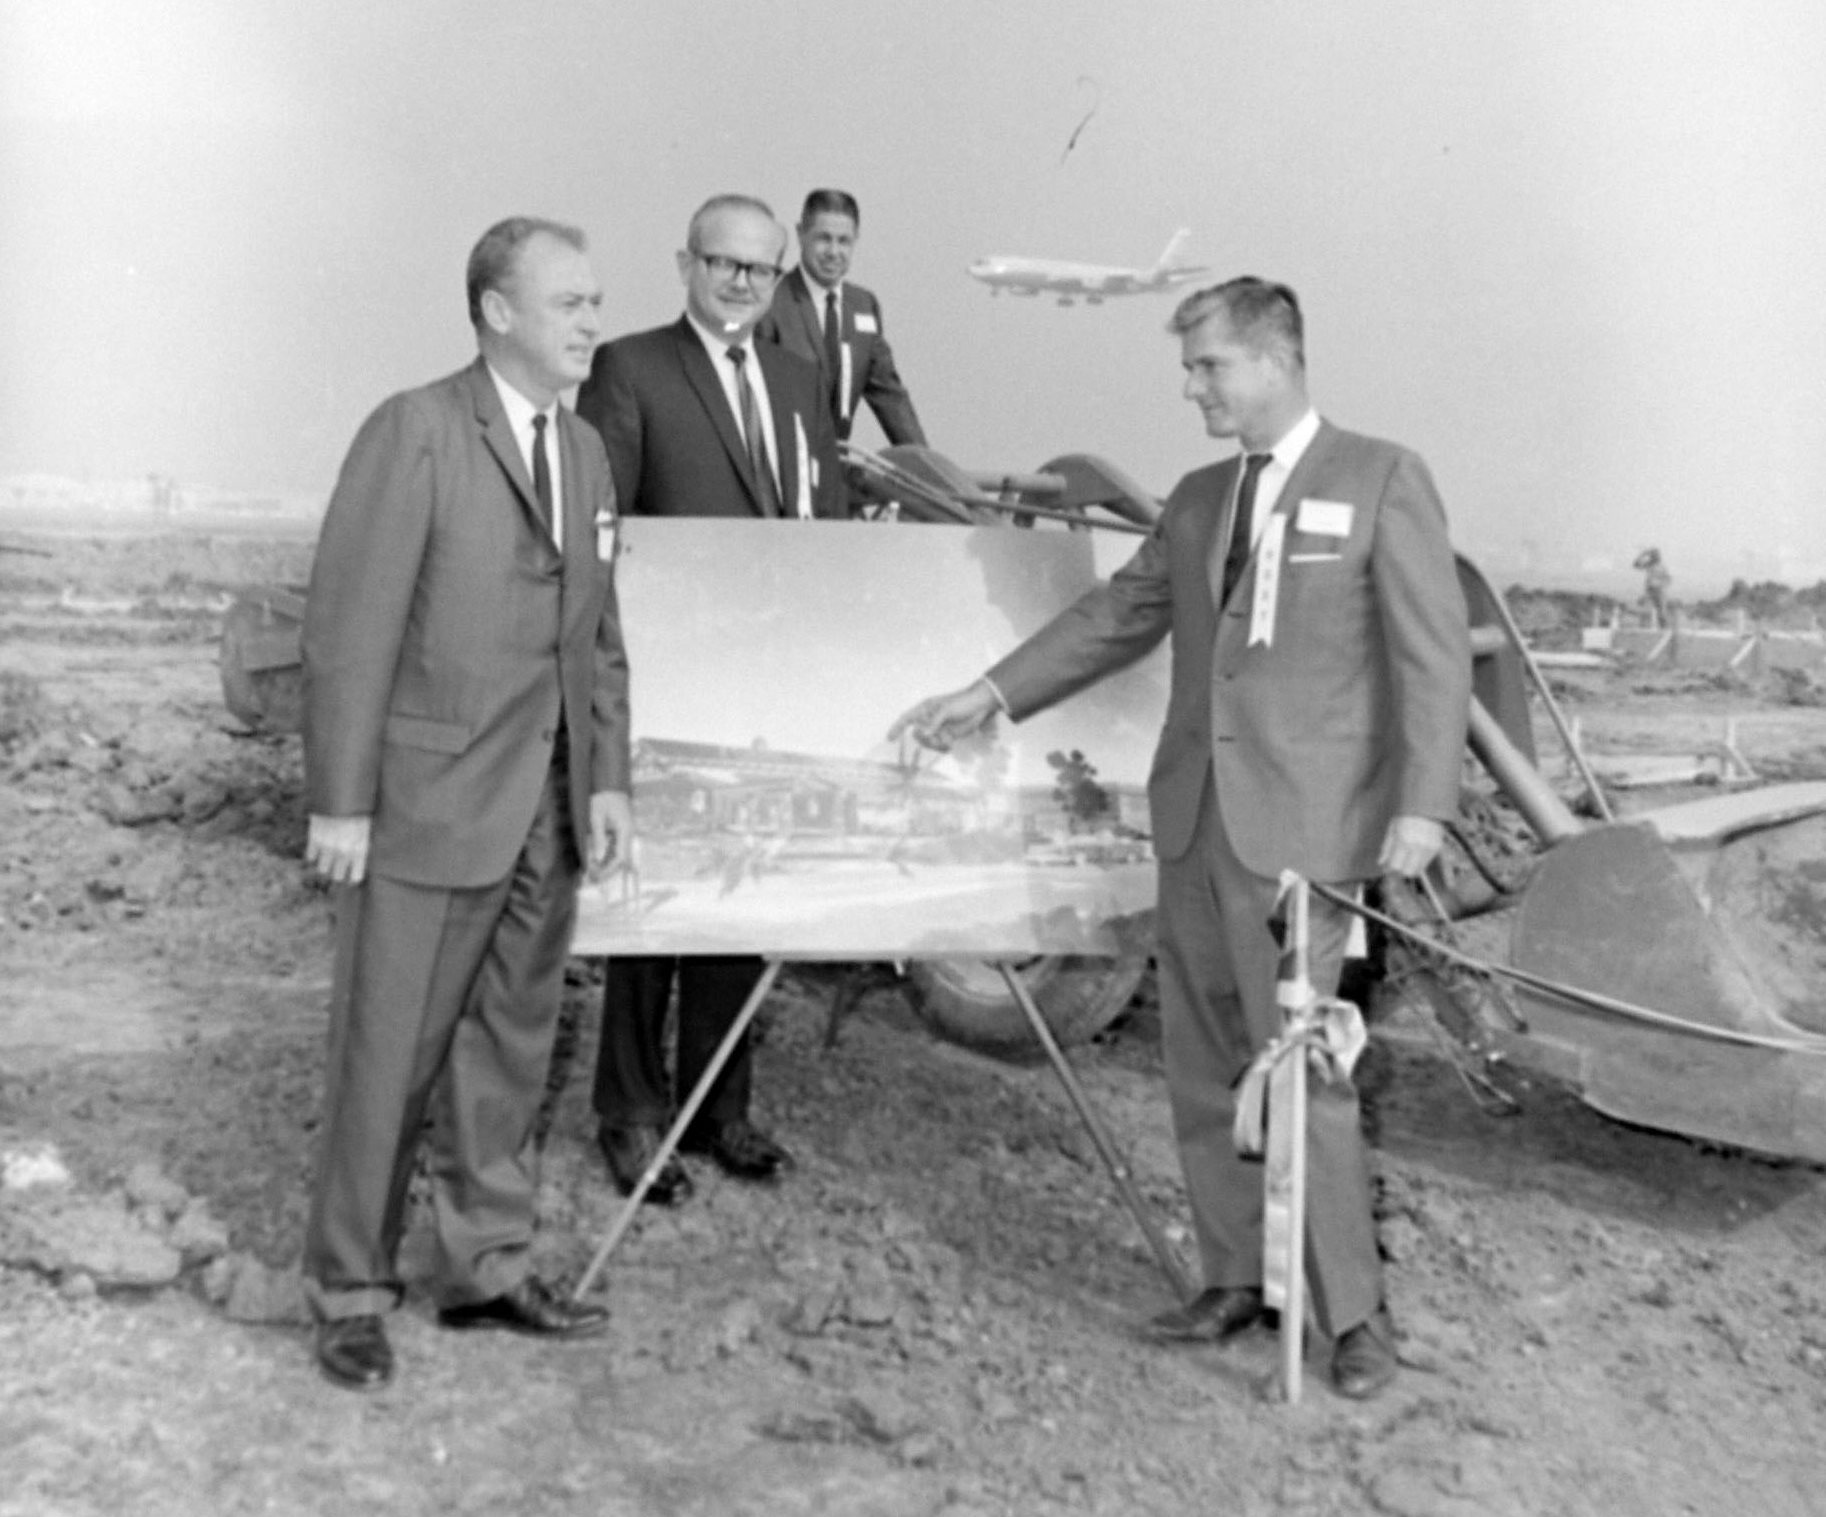 Groundbreaking for The Proud Bird restaurant near LAX, Oct. 15, 1966. Speciaty Restaurants owner David Tallichet, far right, points at an artist's rendering as, L to R, LAX manager Francis Fox, architect Kenneth Wing and Specialty VP David Perrin look on.